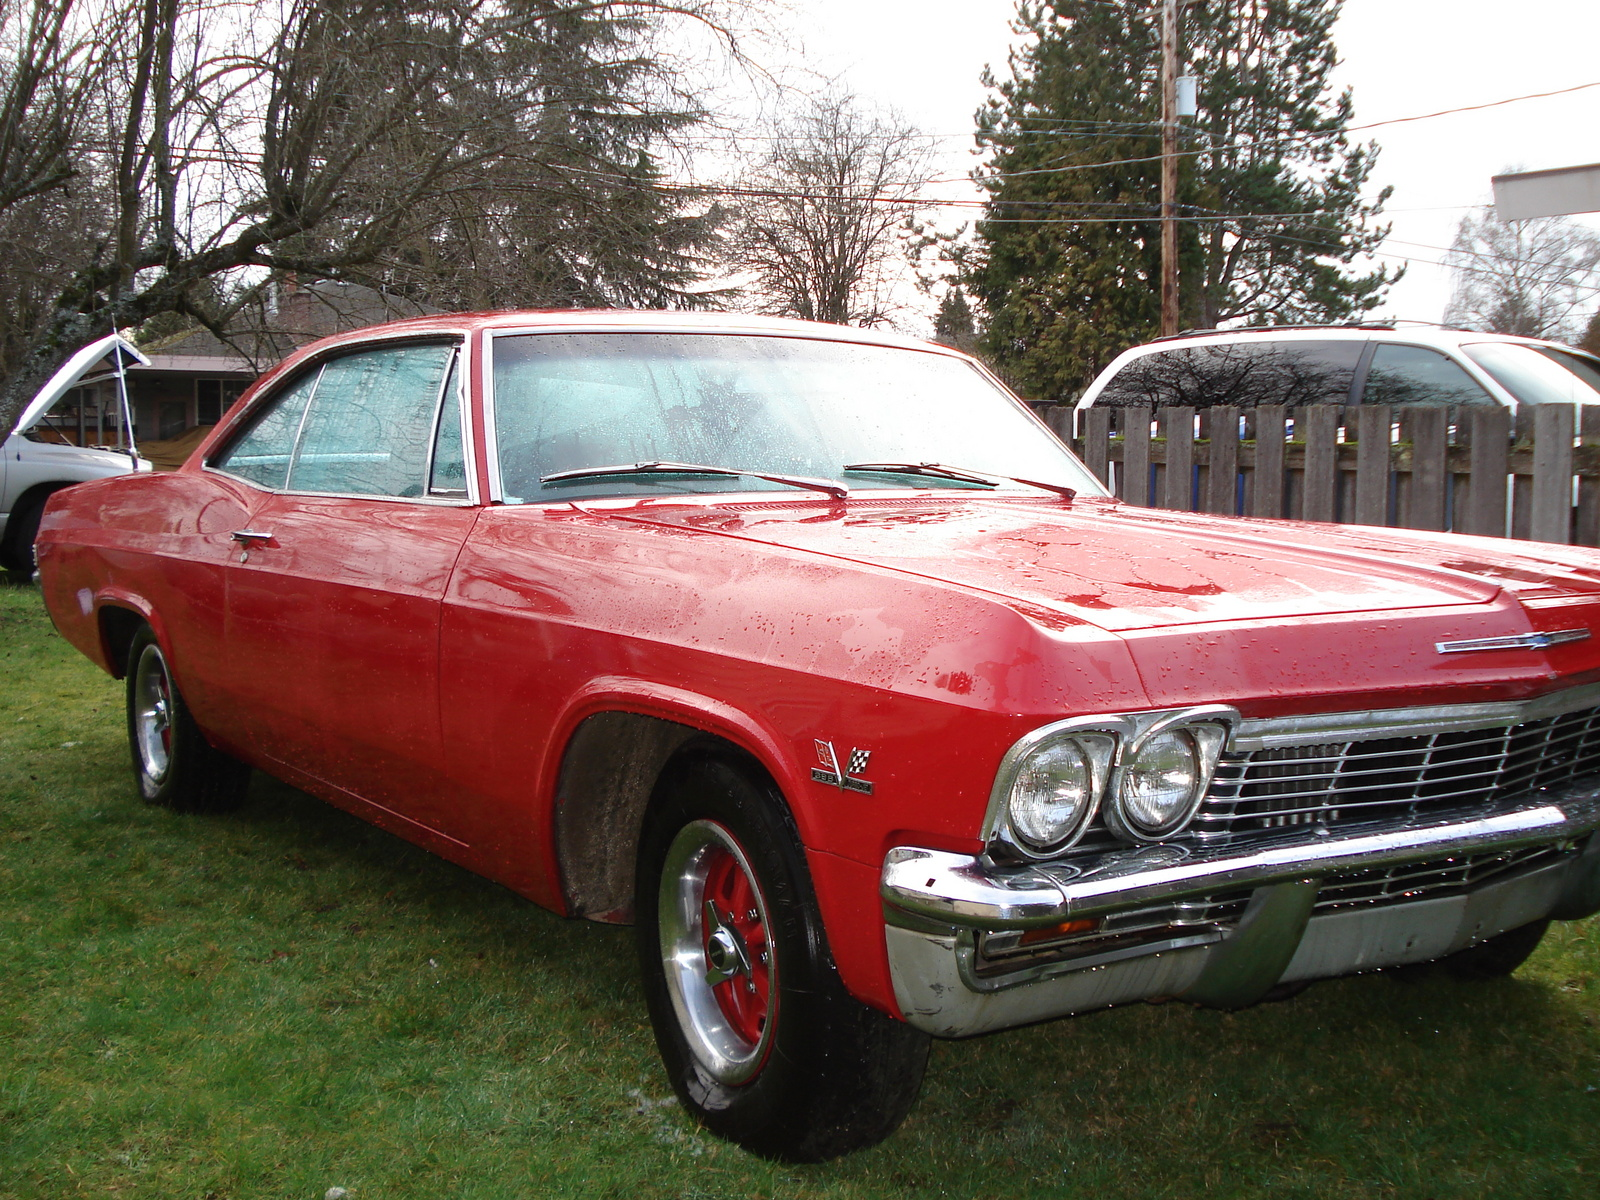 1965 chevy impala ss cheap used cars for sale by owner autos post. Black Bedroom Furniture Sets. Home Design Ideas